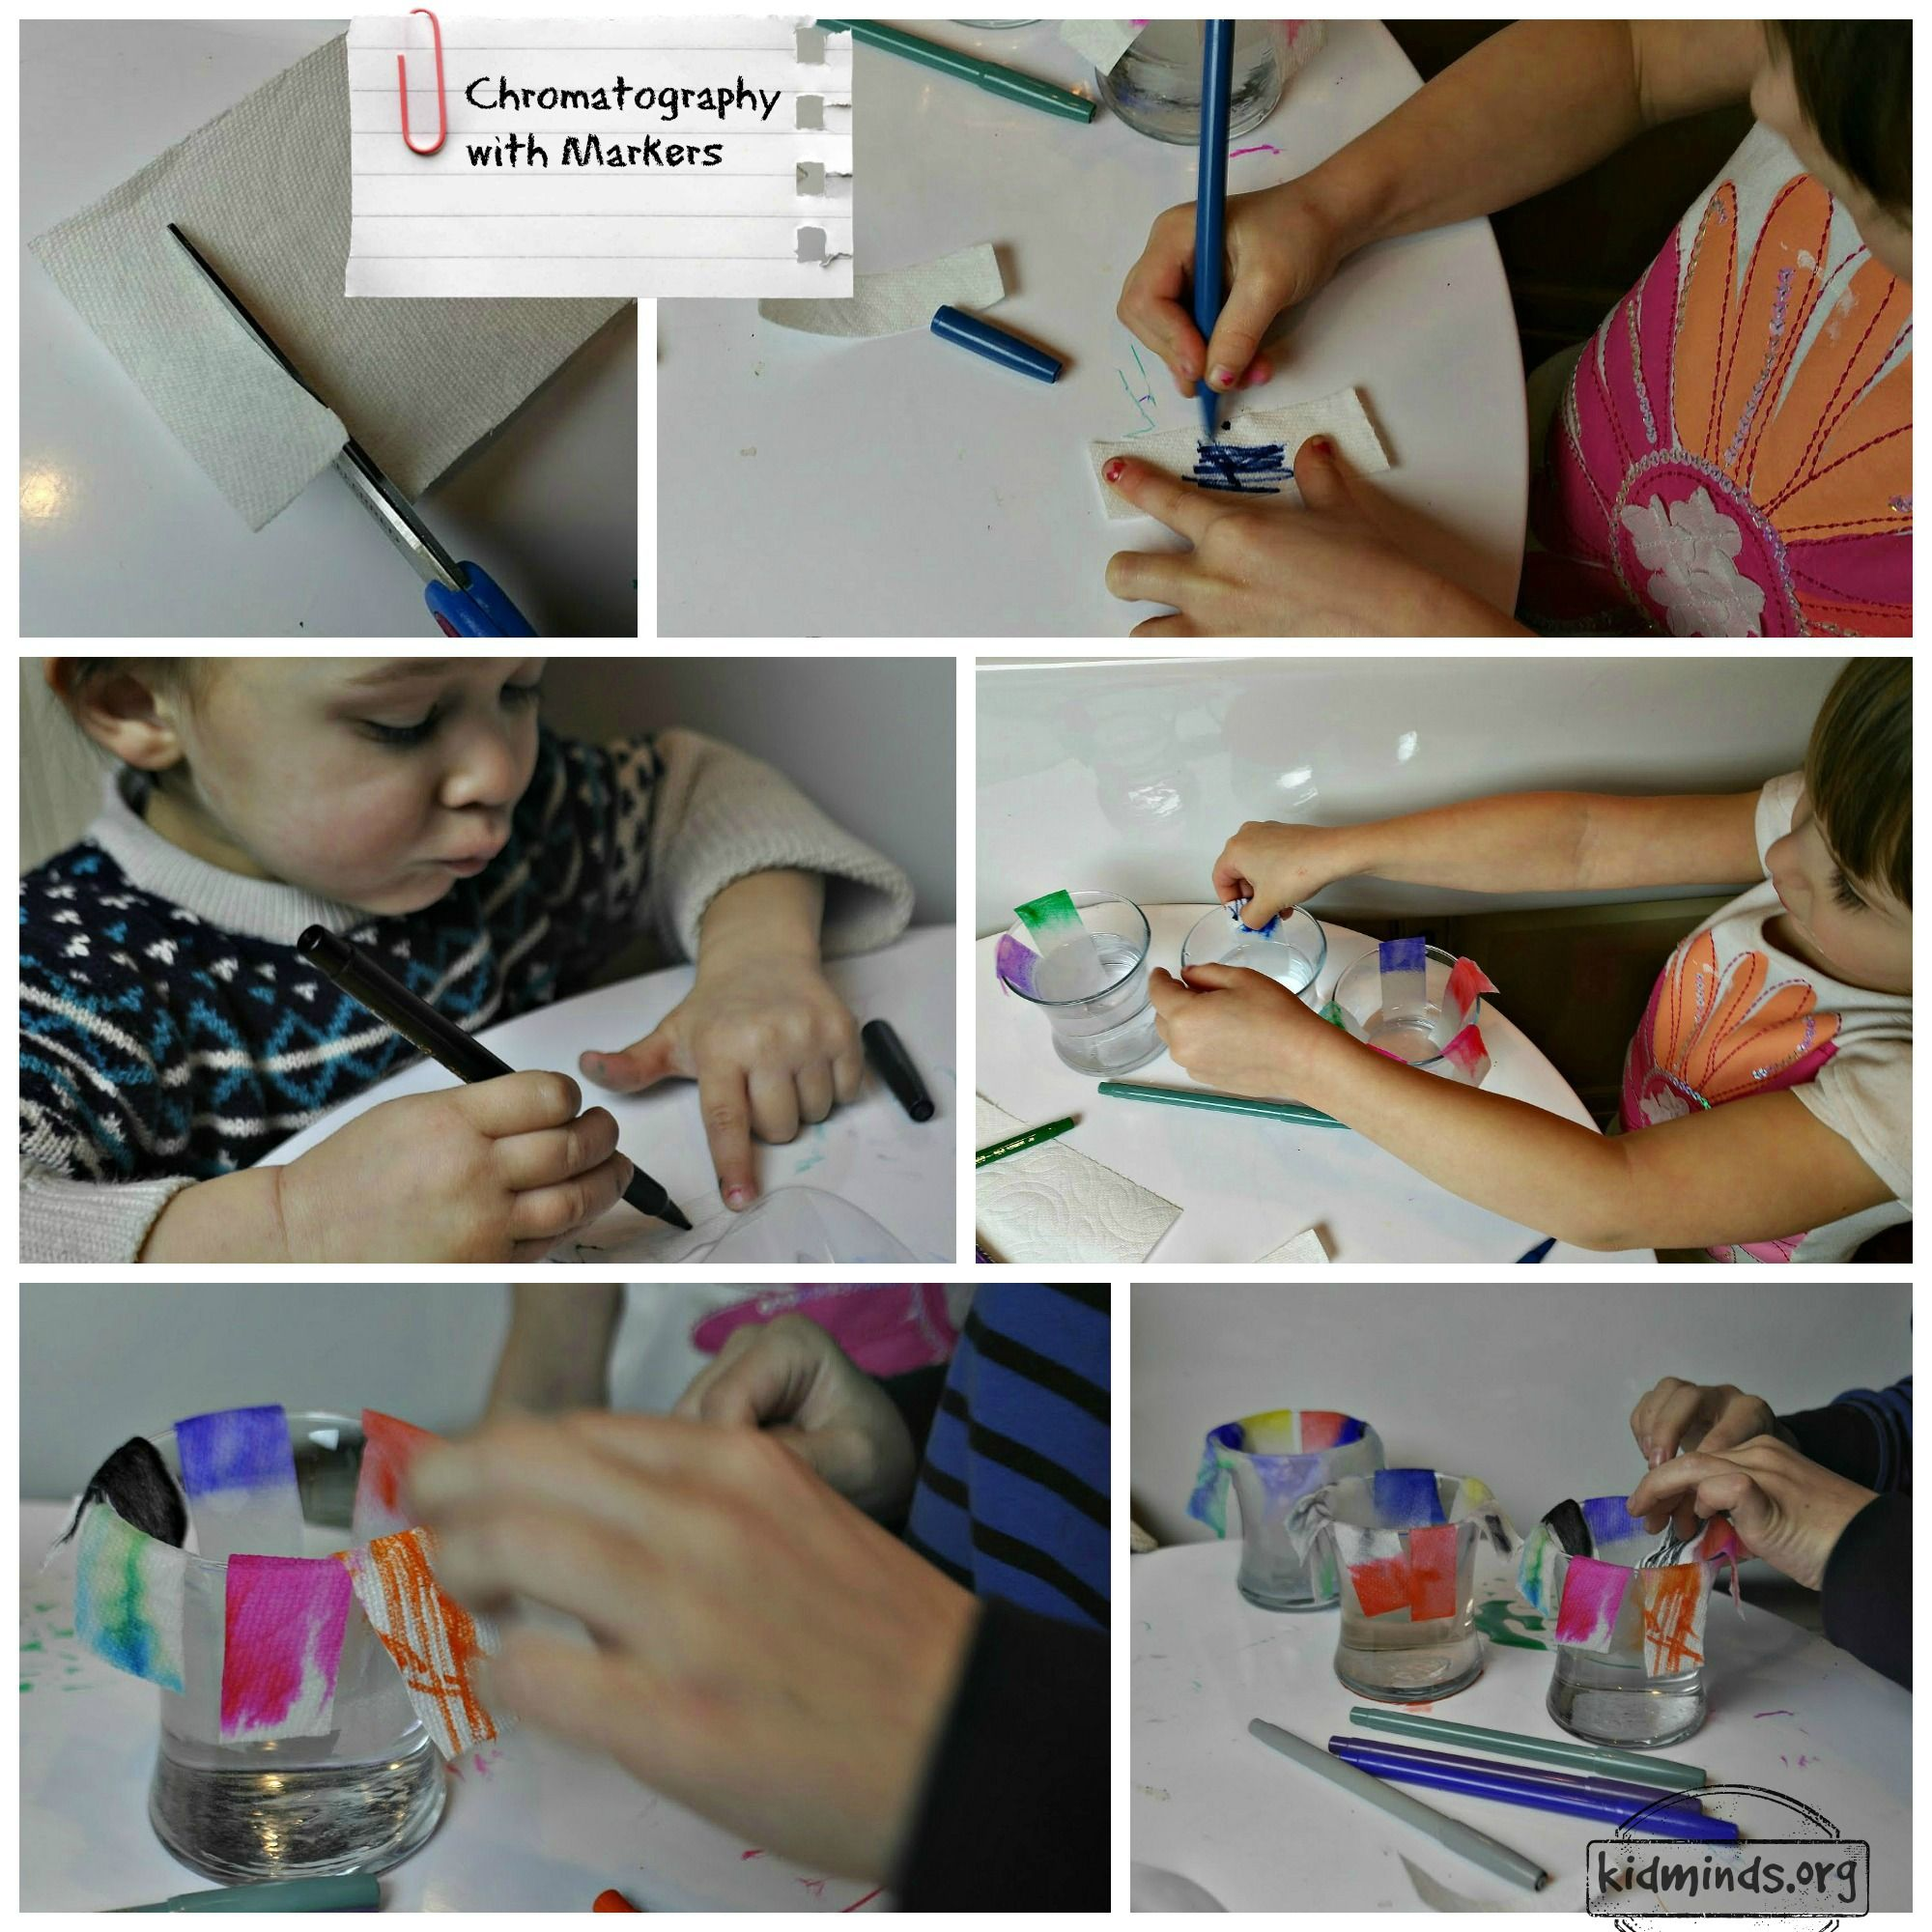 Chromatography Experiments with Kids - 5 ways | Markers